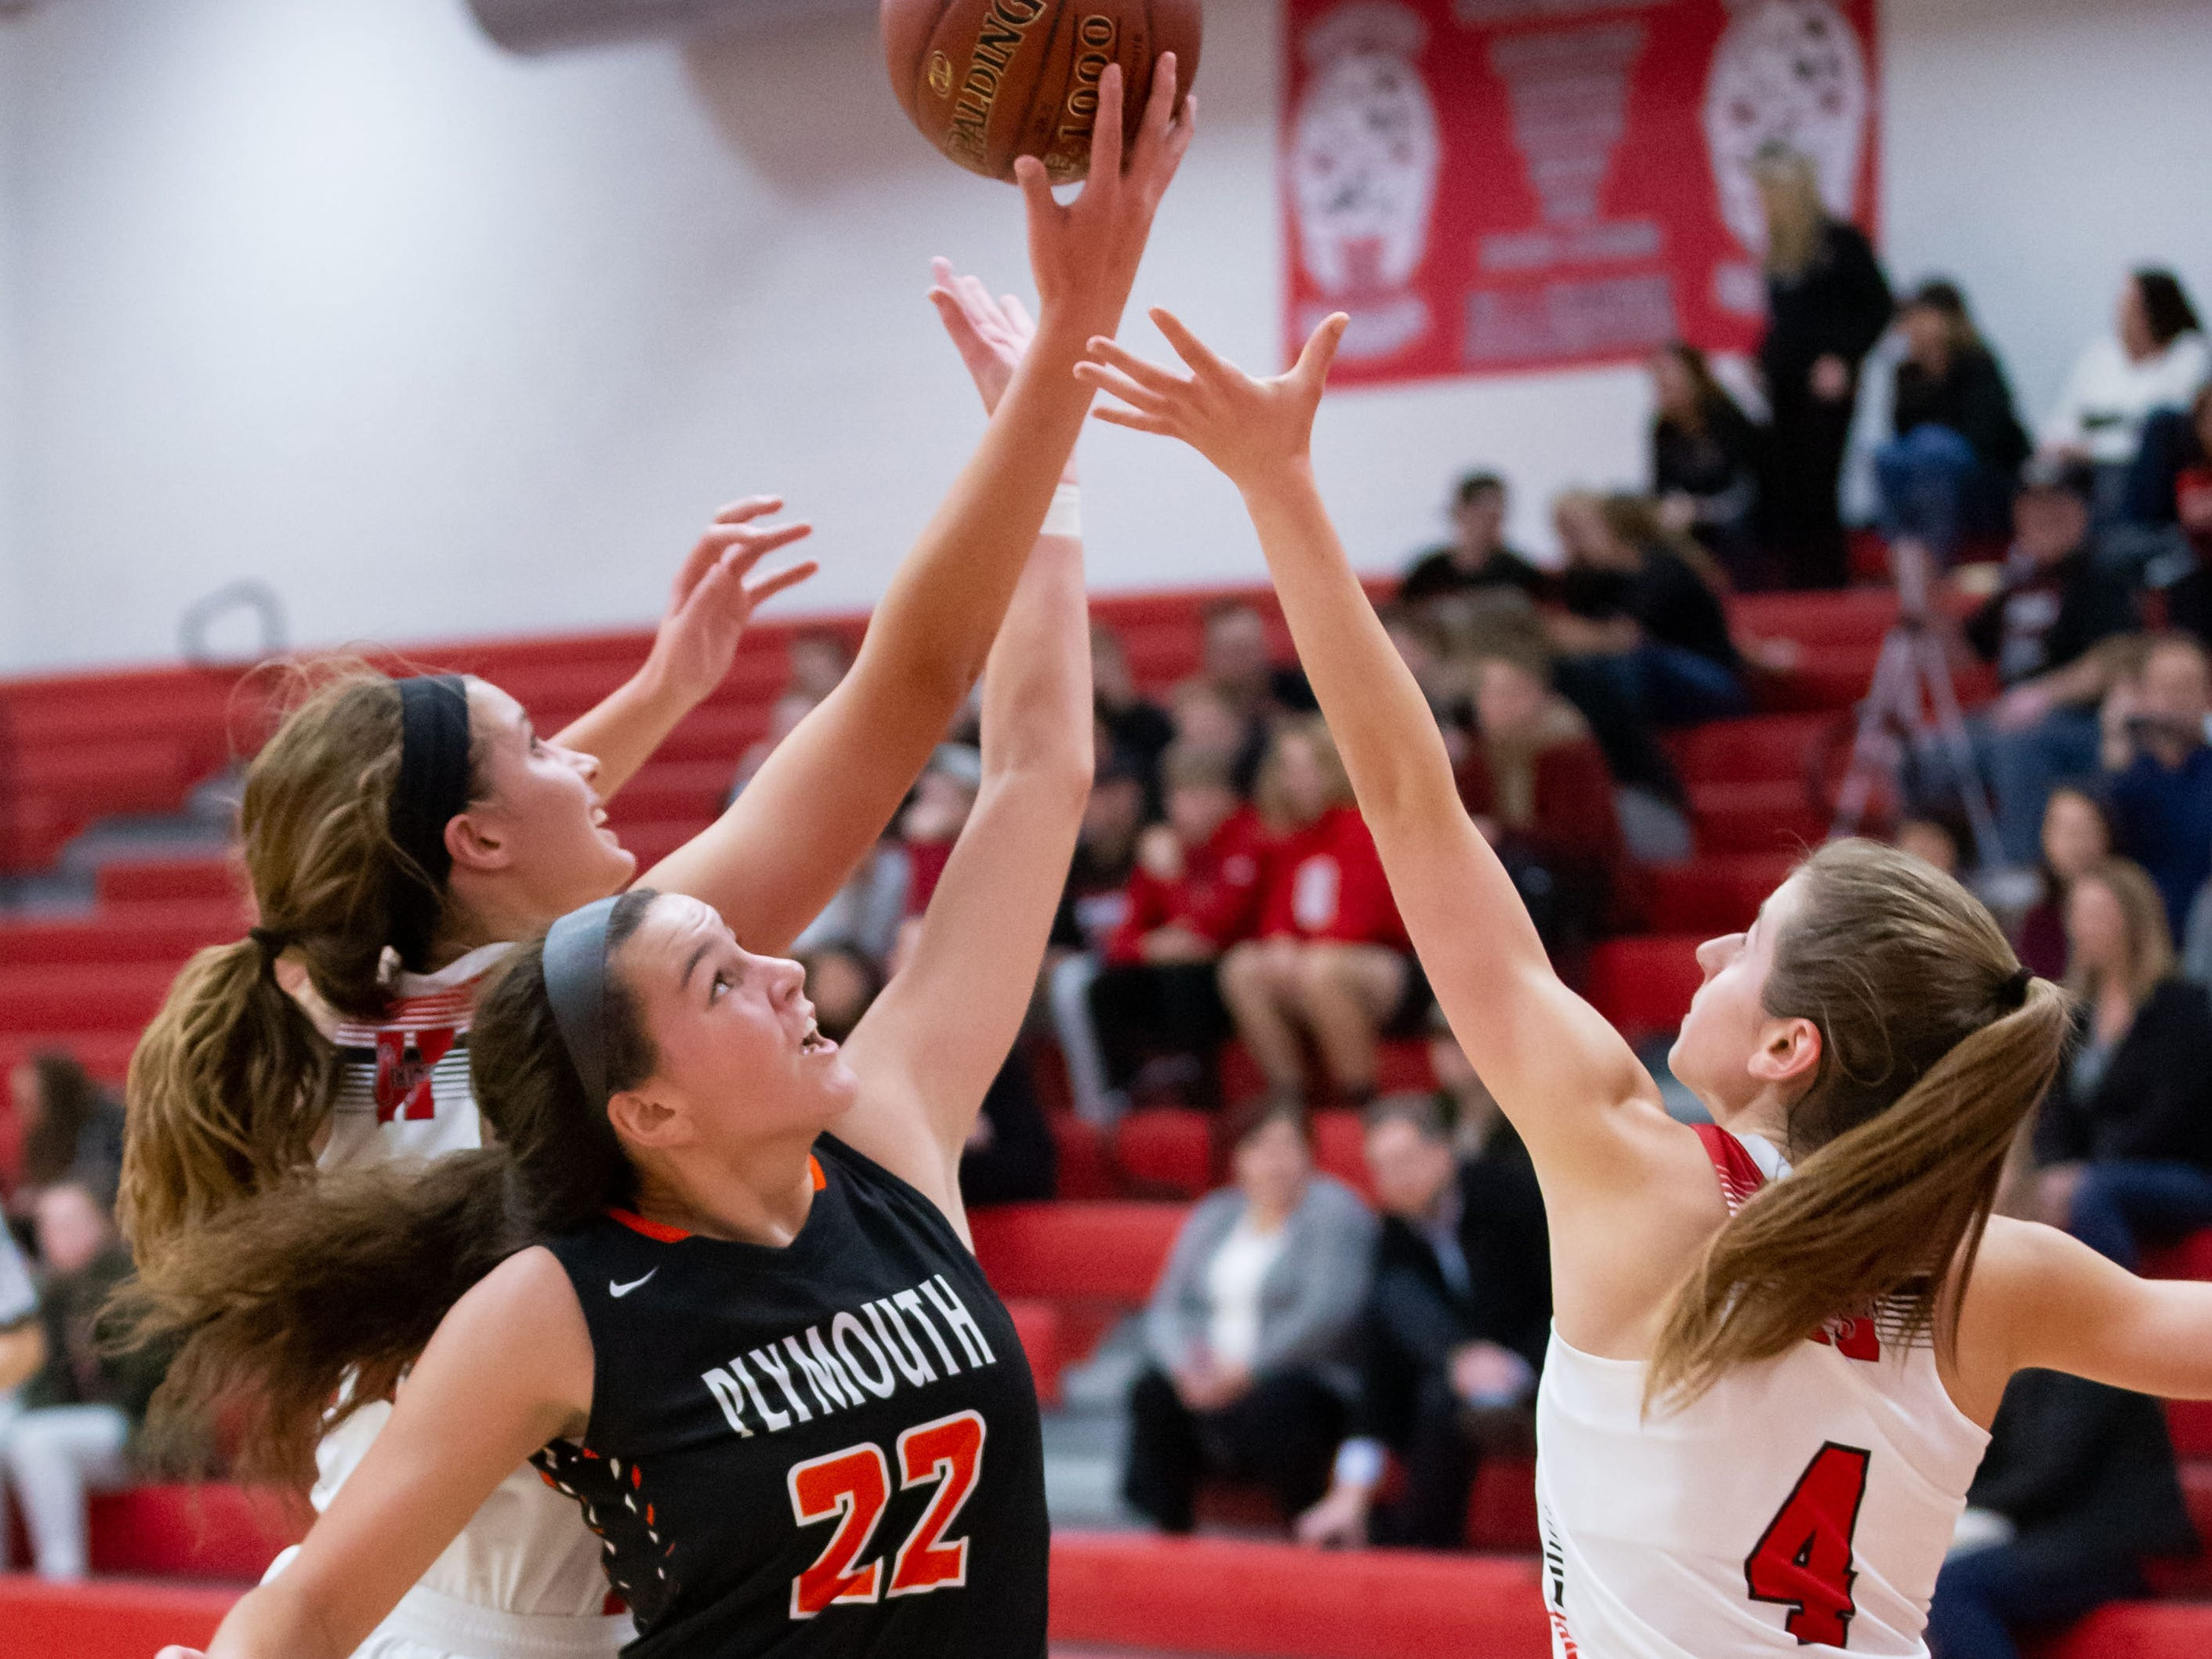 Hamilton junior Lexi Konop (left) and Kate Fantl (4) battle for a rebound with Plymouth's Kalani Smith (22) during the game at Hamilton on Tuesday, Dec. 4, 2018.